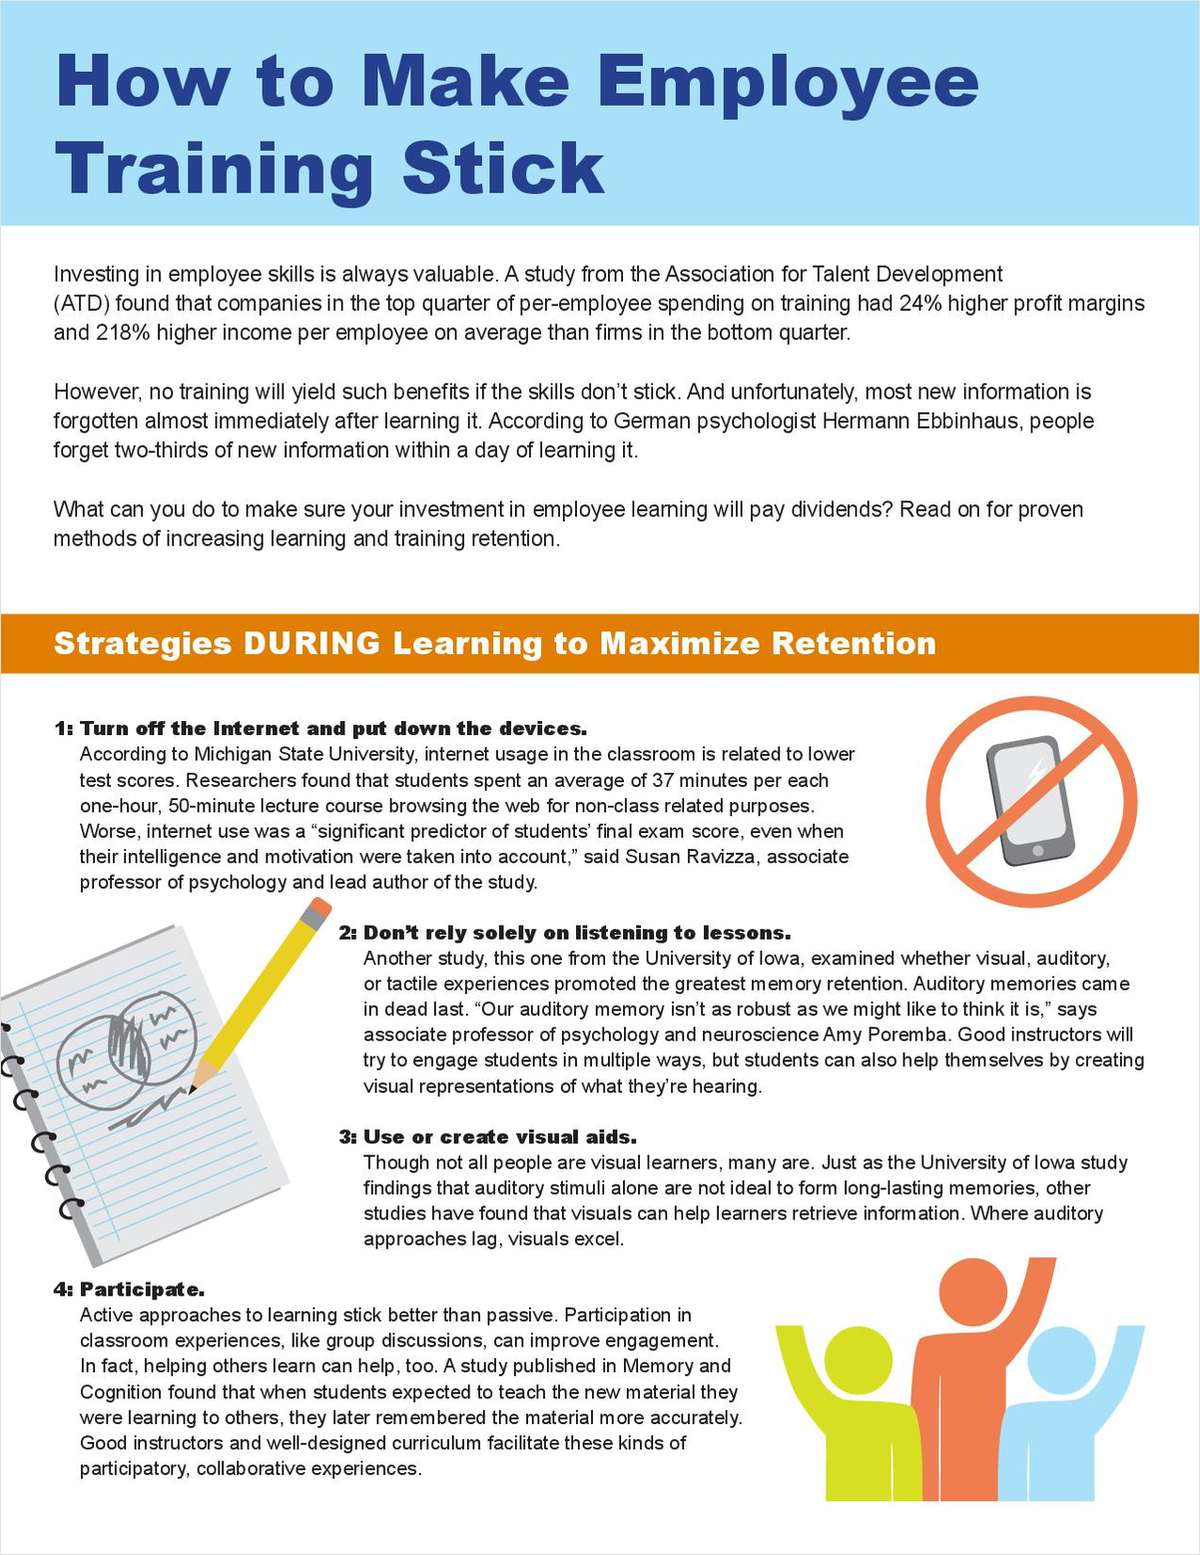 How to Make Employee Learning Stick